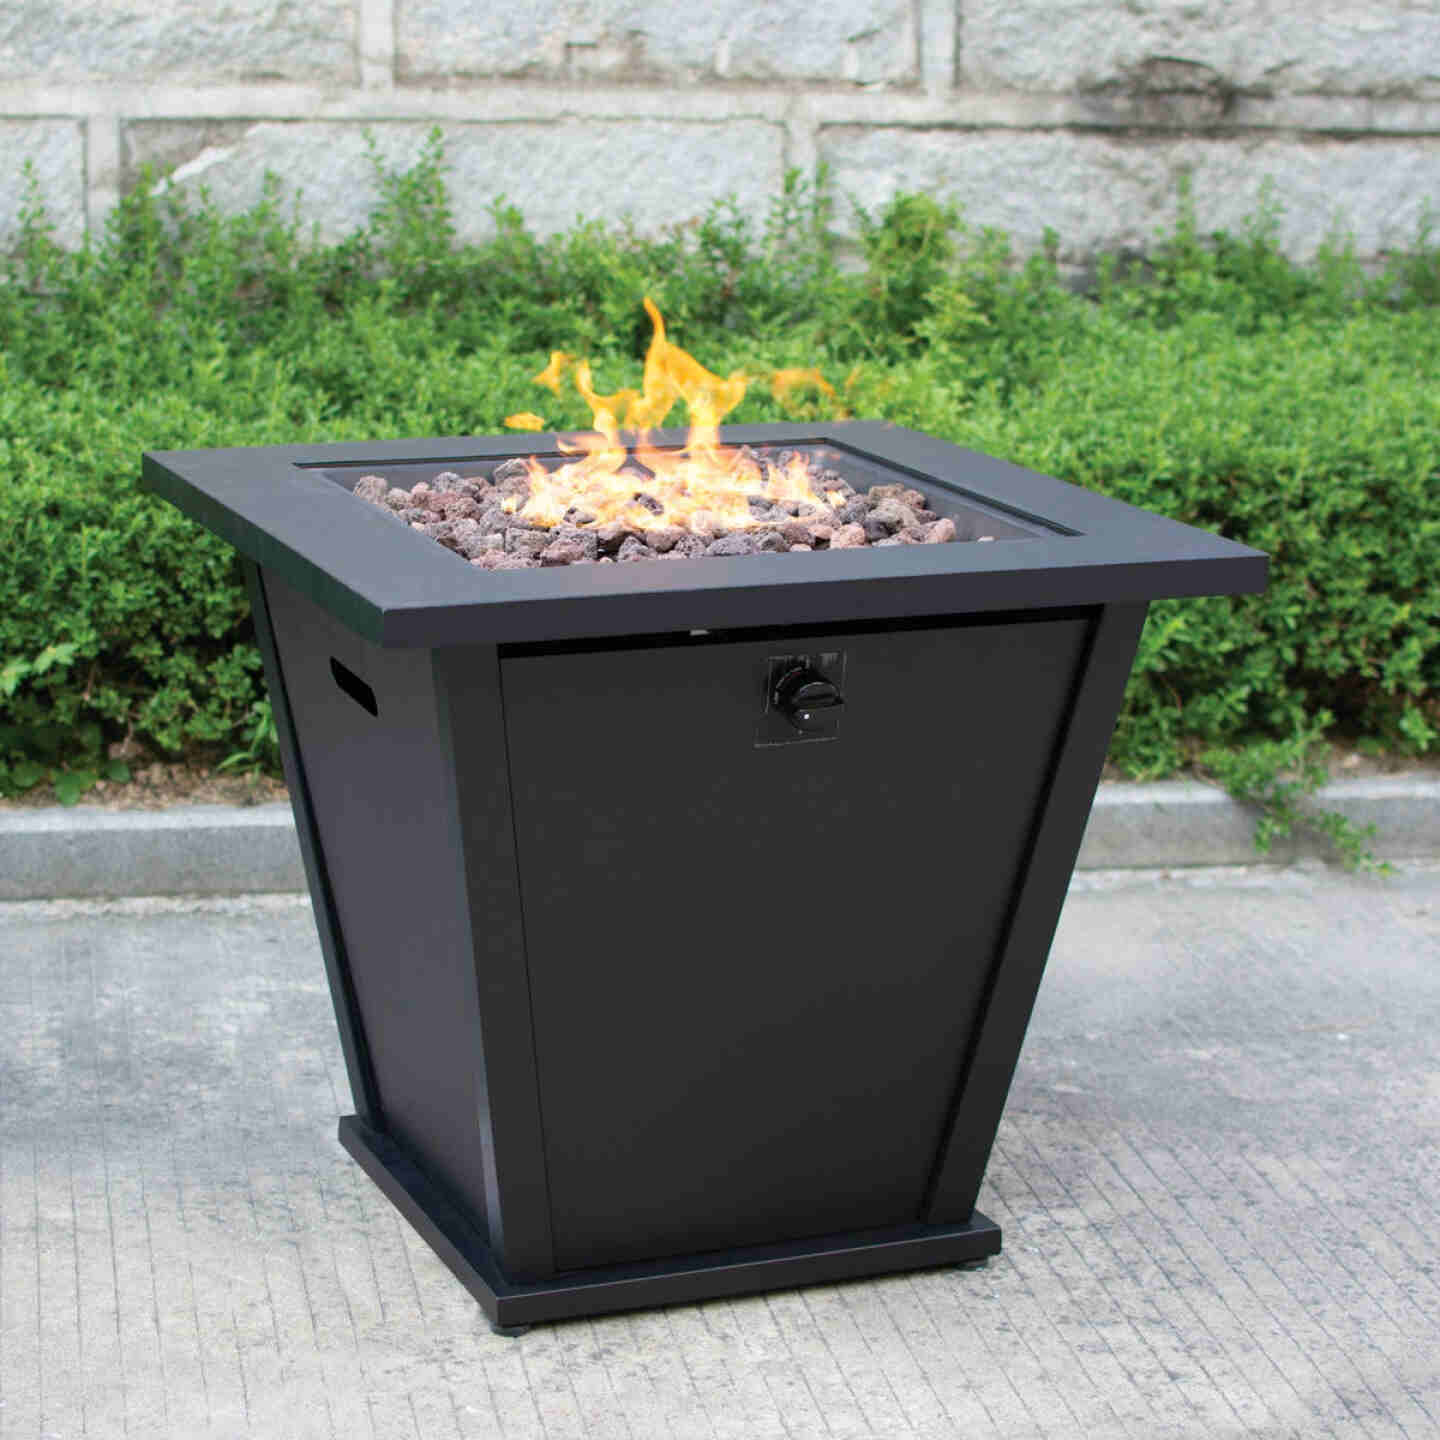 Bond Olivera 28 In. Square Steel Gas Fire Pit Image 2